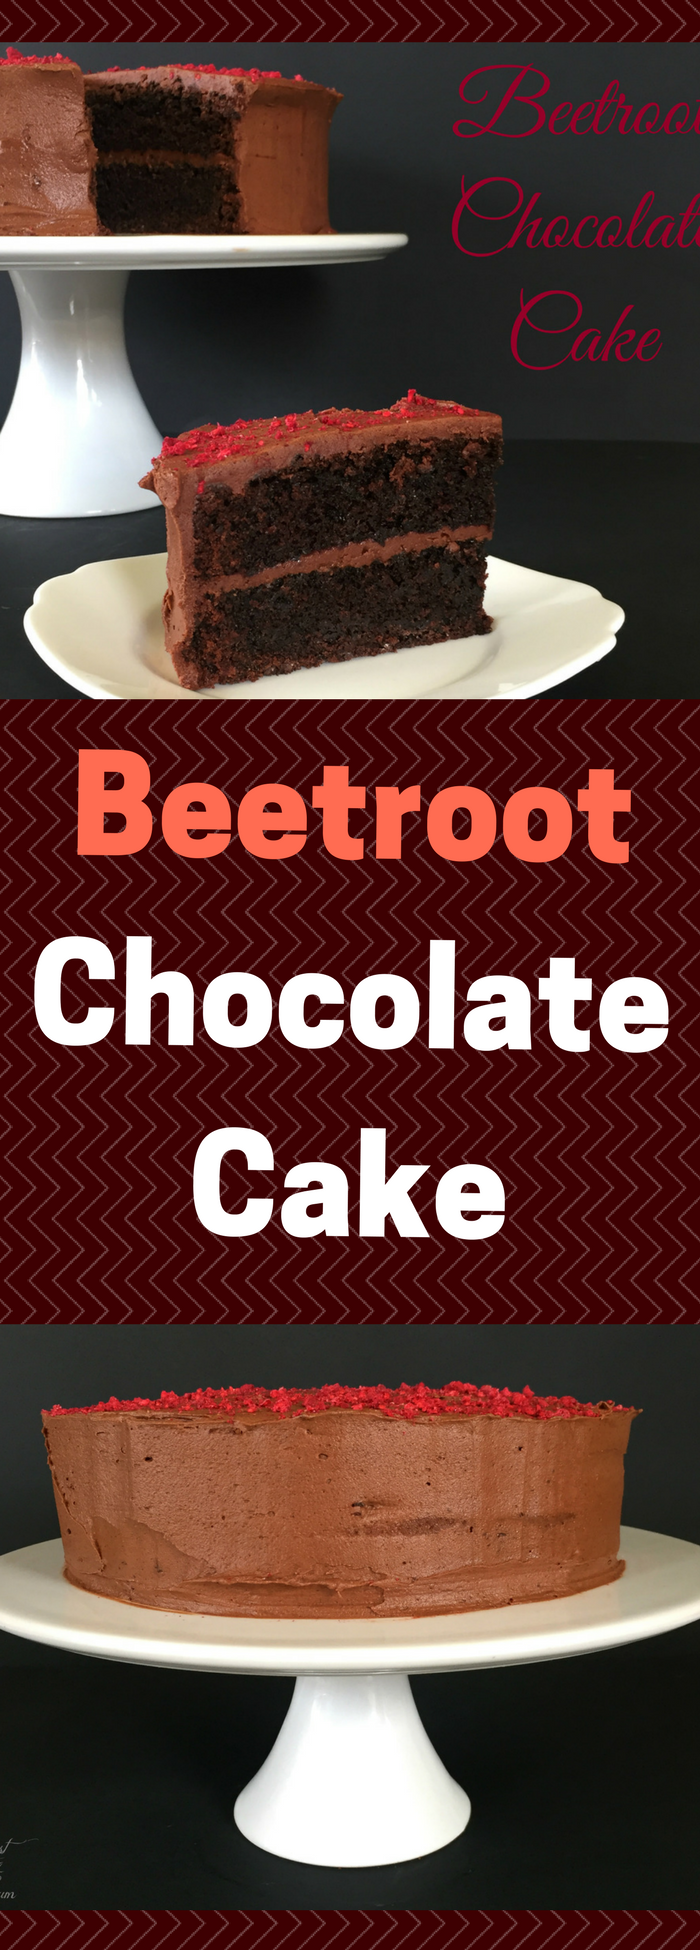 Delicious Beetroot Chocolate Cake